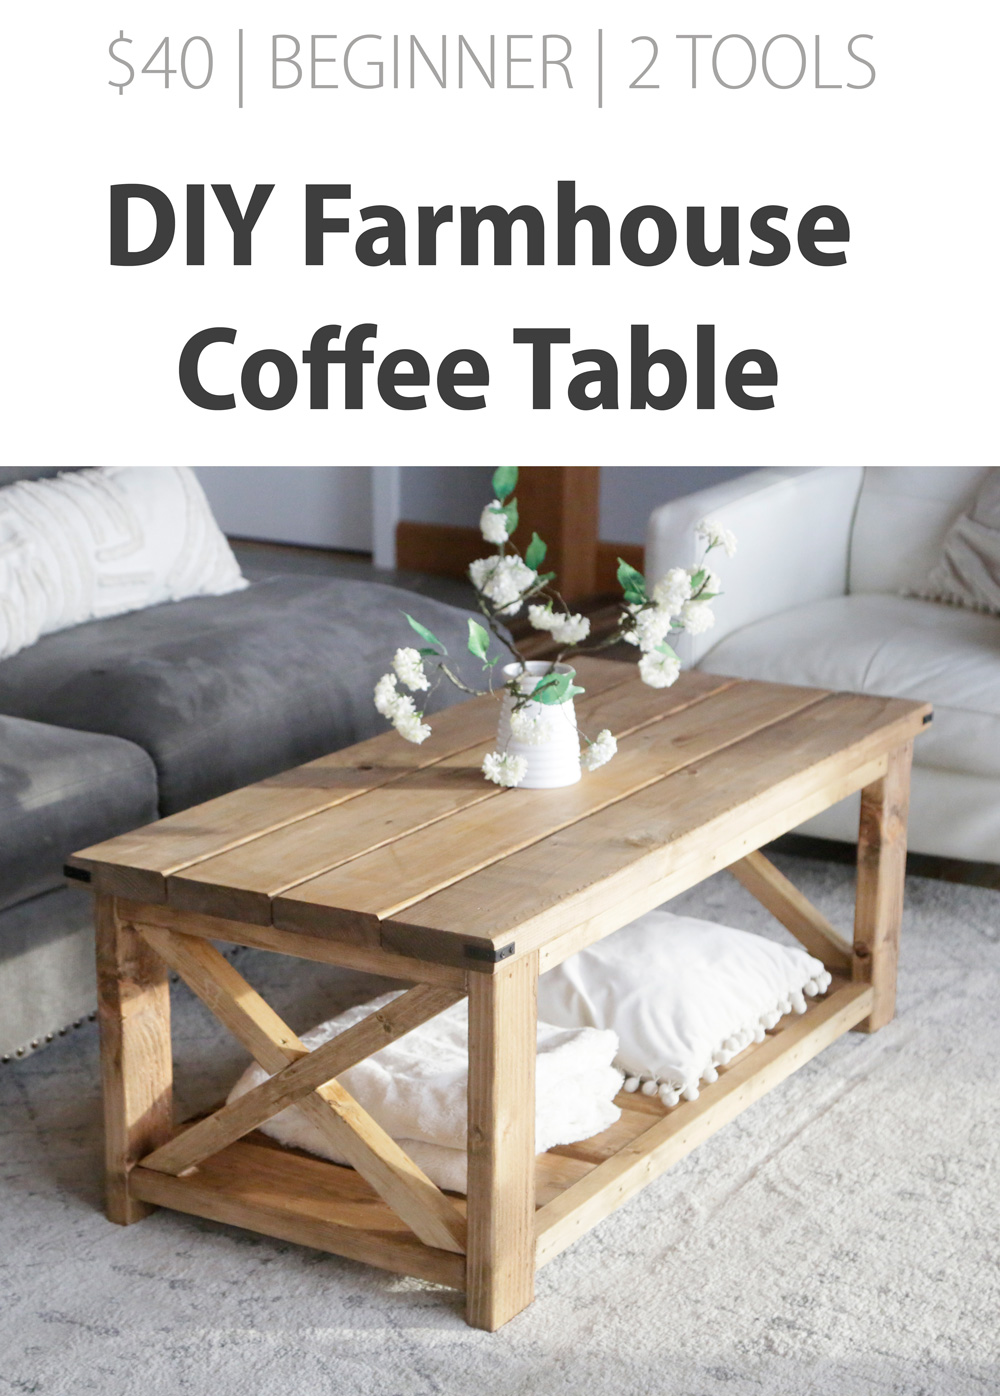 Farmhouse Coffee Table [Beginner/Under $40] #anawhite